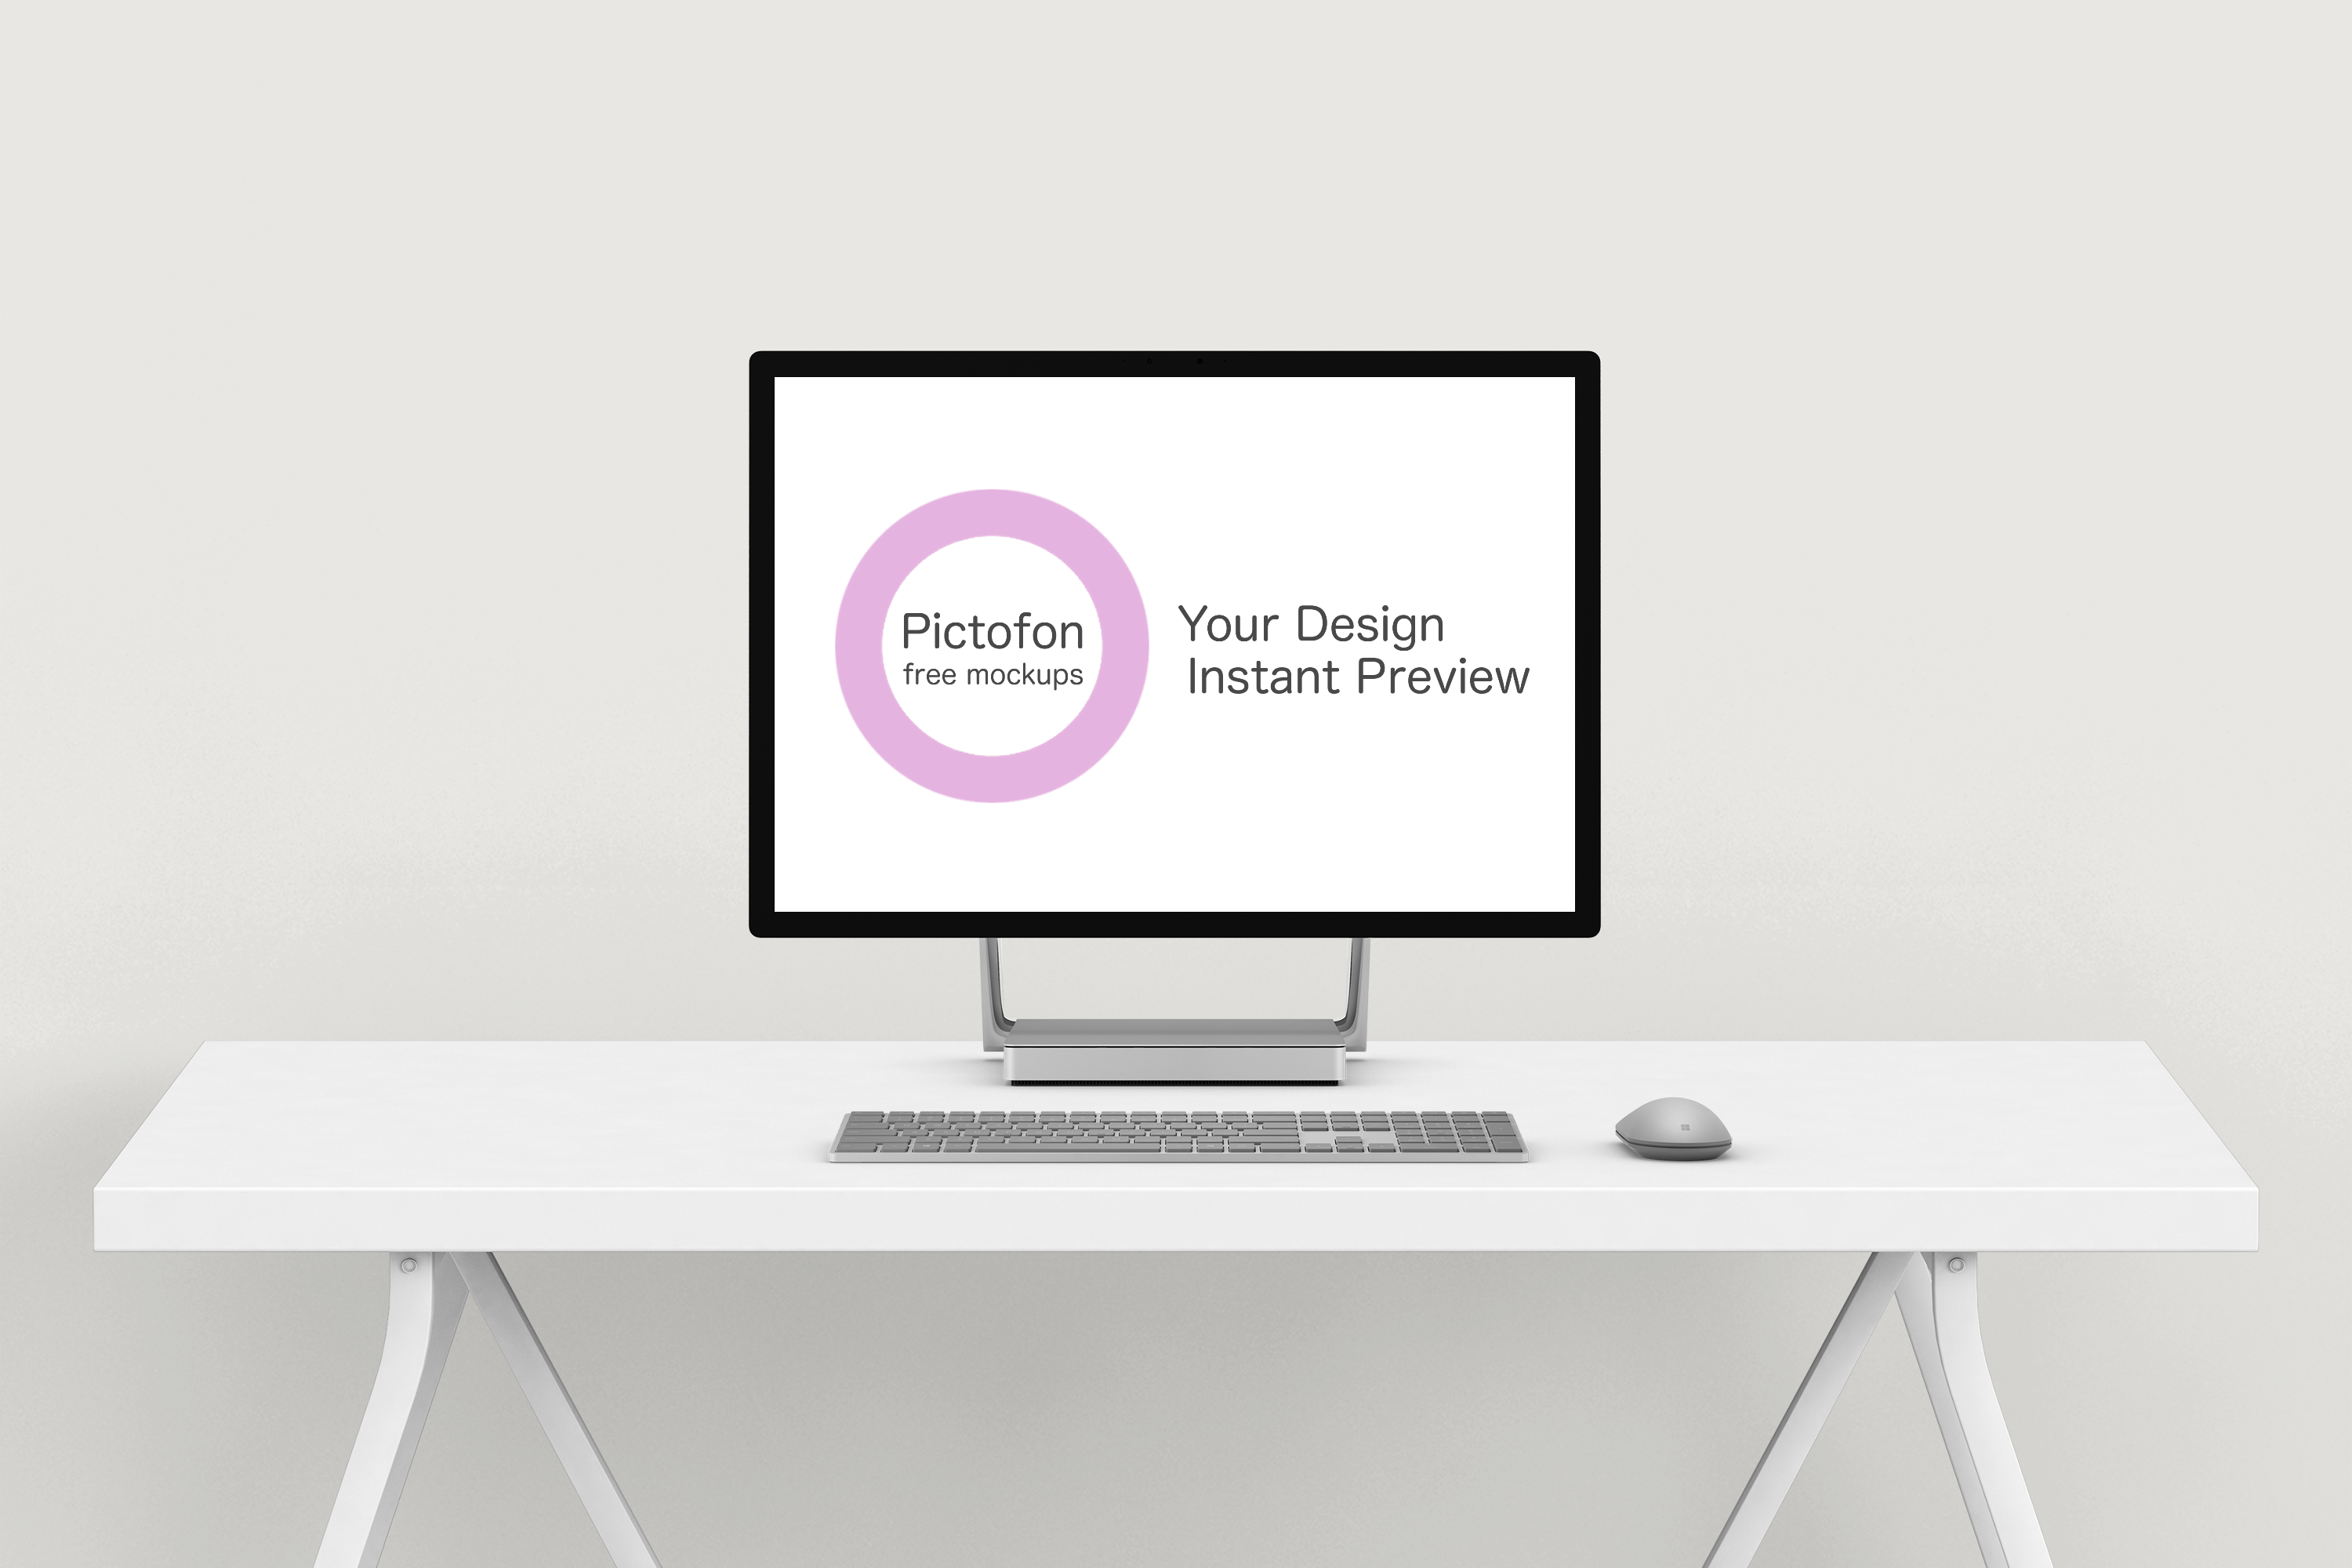 New Free Surface Mockup With Instant Preview Of Your Design On Pictofon Com Free Mockup Generator Mockup Business Card Mock Up